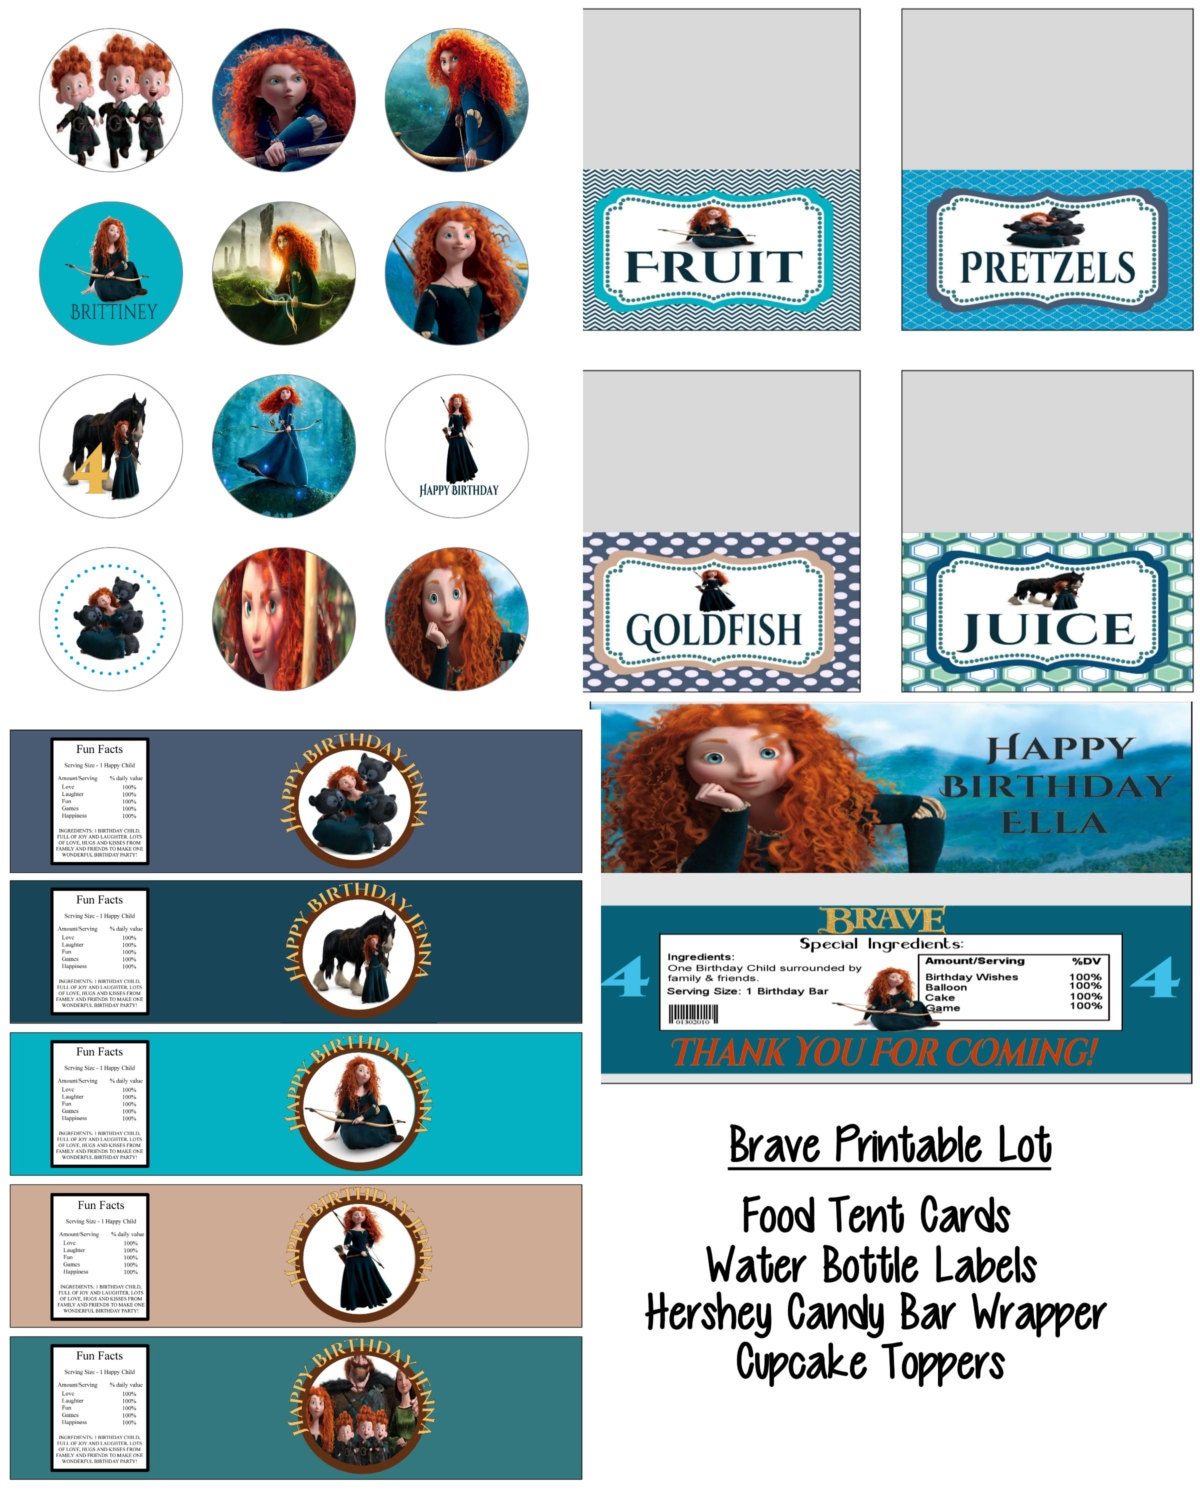 Disney Pixar Brave Merida Birthday Party Printable Lot Favors and More